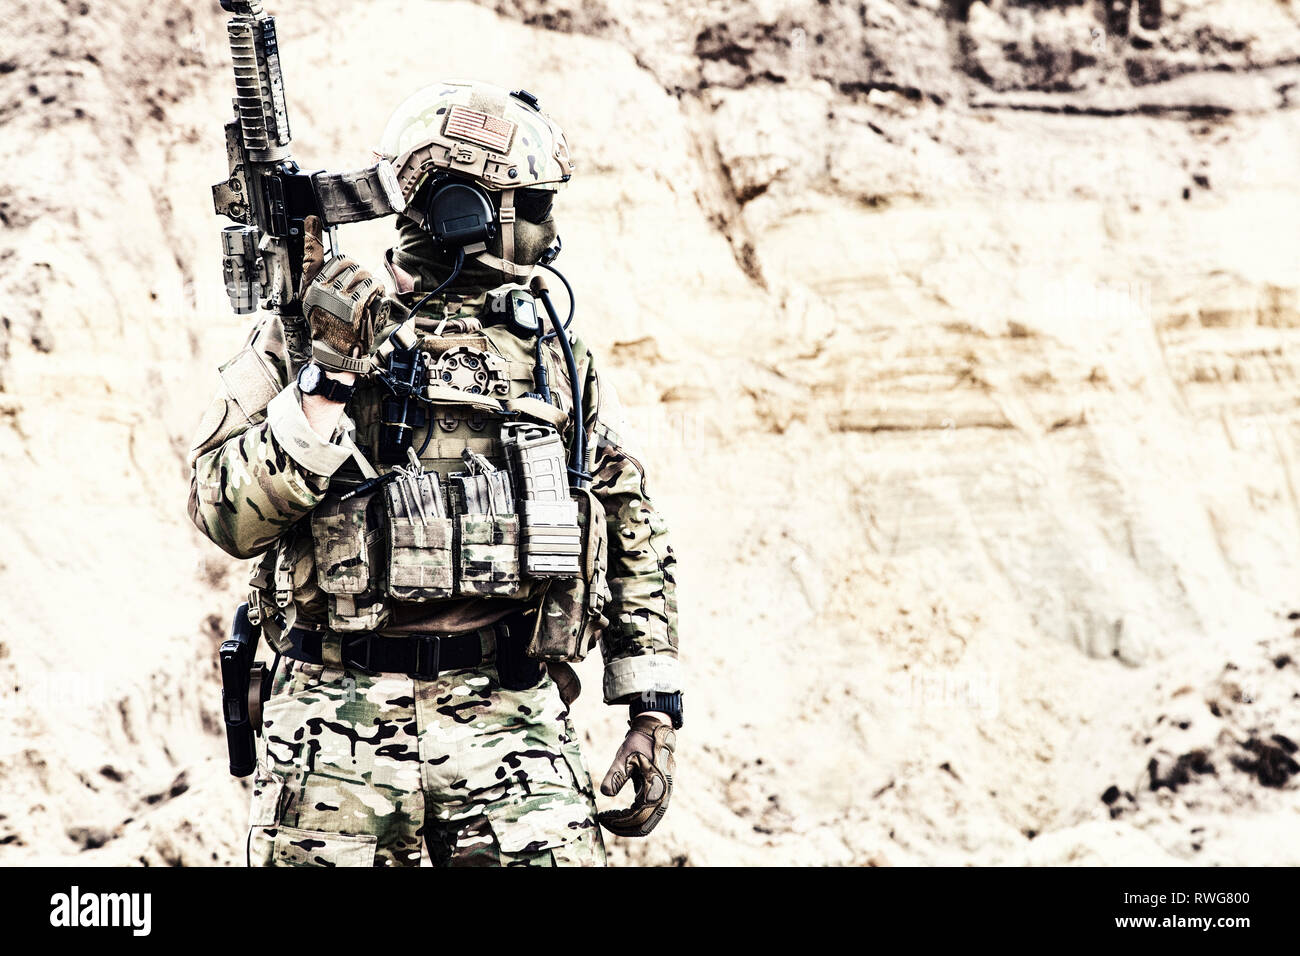 Elite fighter of special forces standing with service rifle, ready for battle. - Stock Image